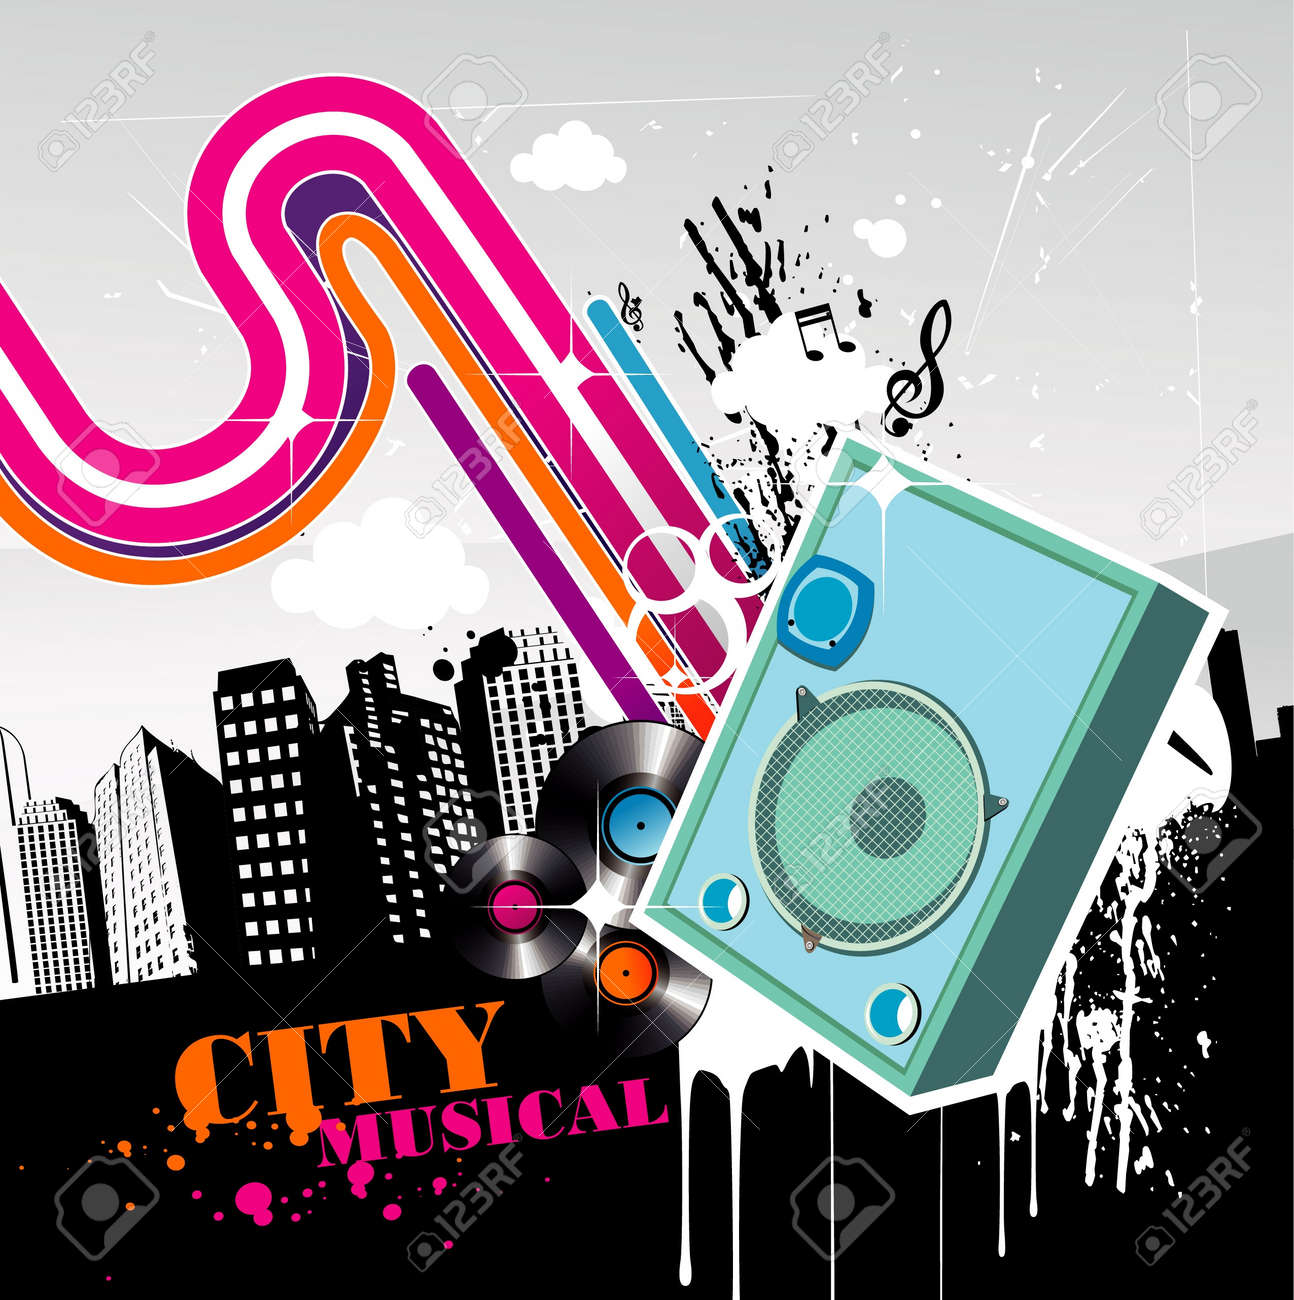 music in the city vector Stock Vector - 12772699